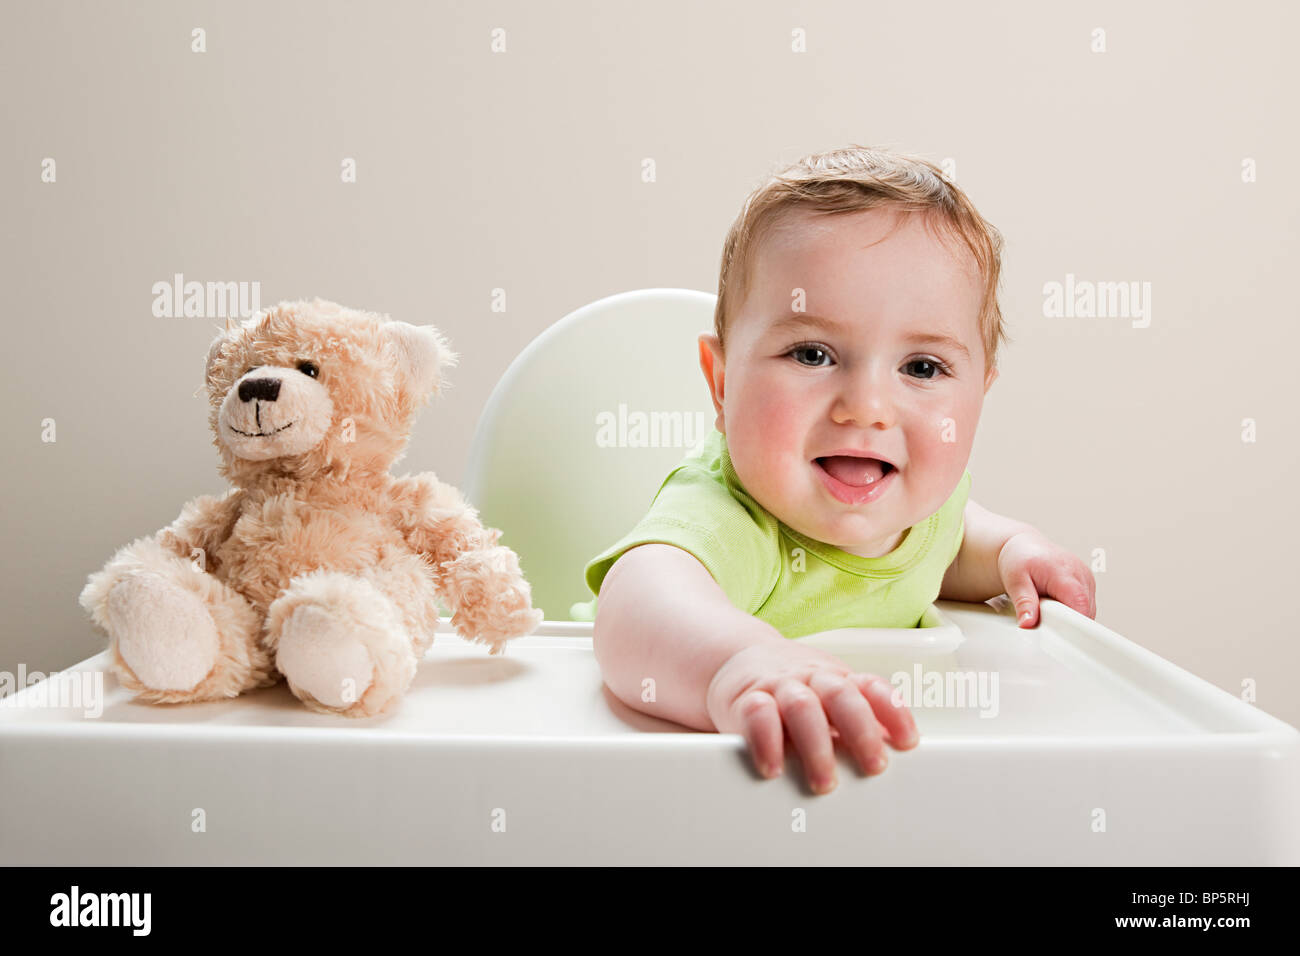 Baby boy sitting in highchair with teddy bear - Stock Image